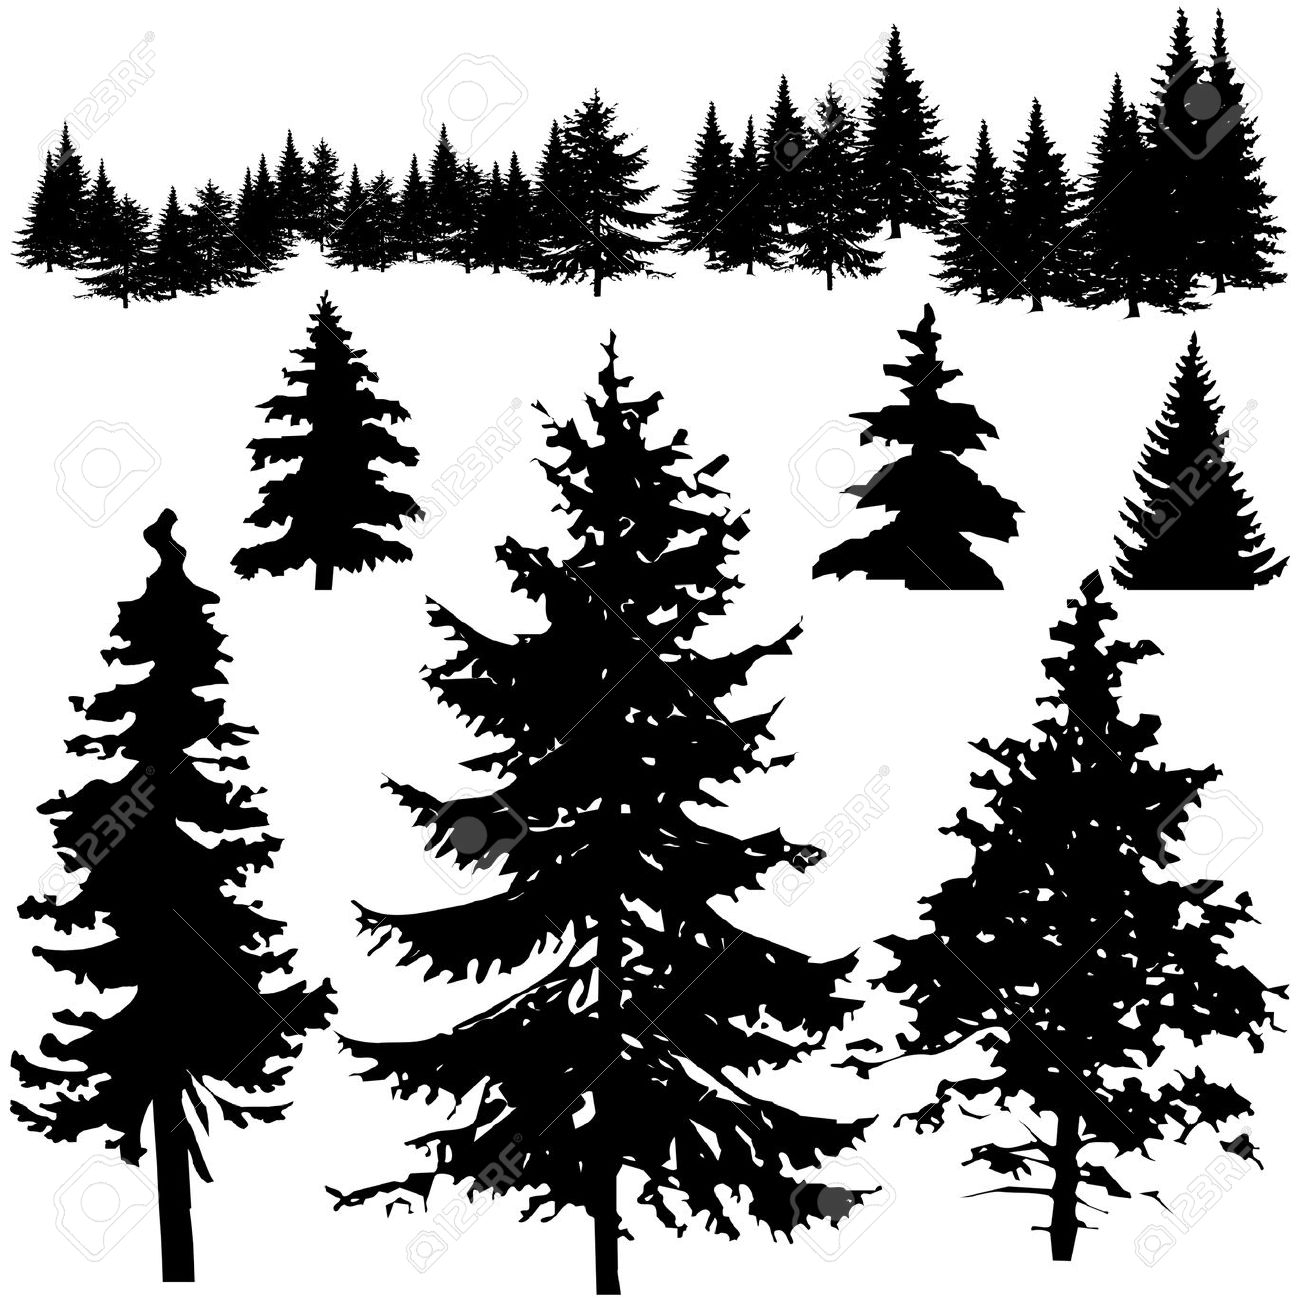 clipart silhouette tree  Clipground